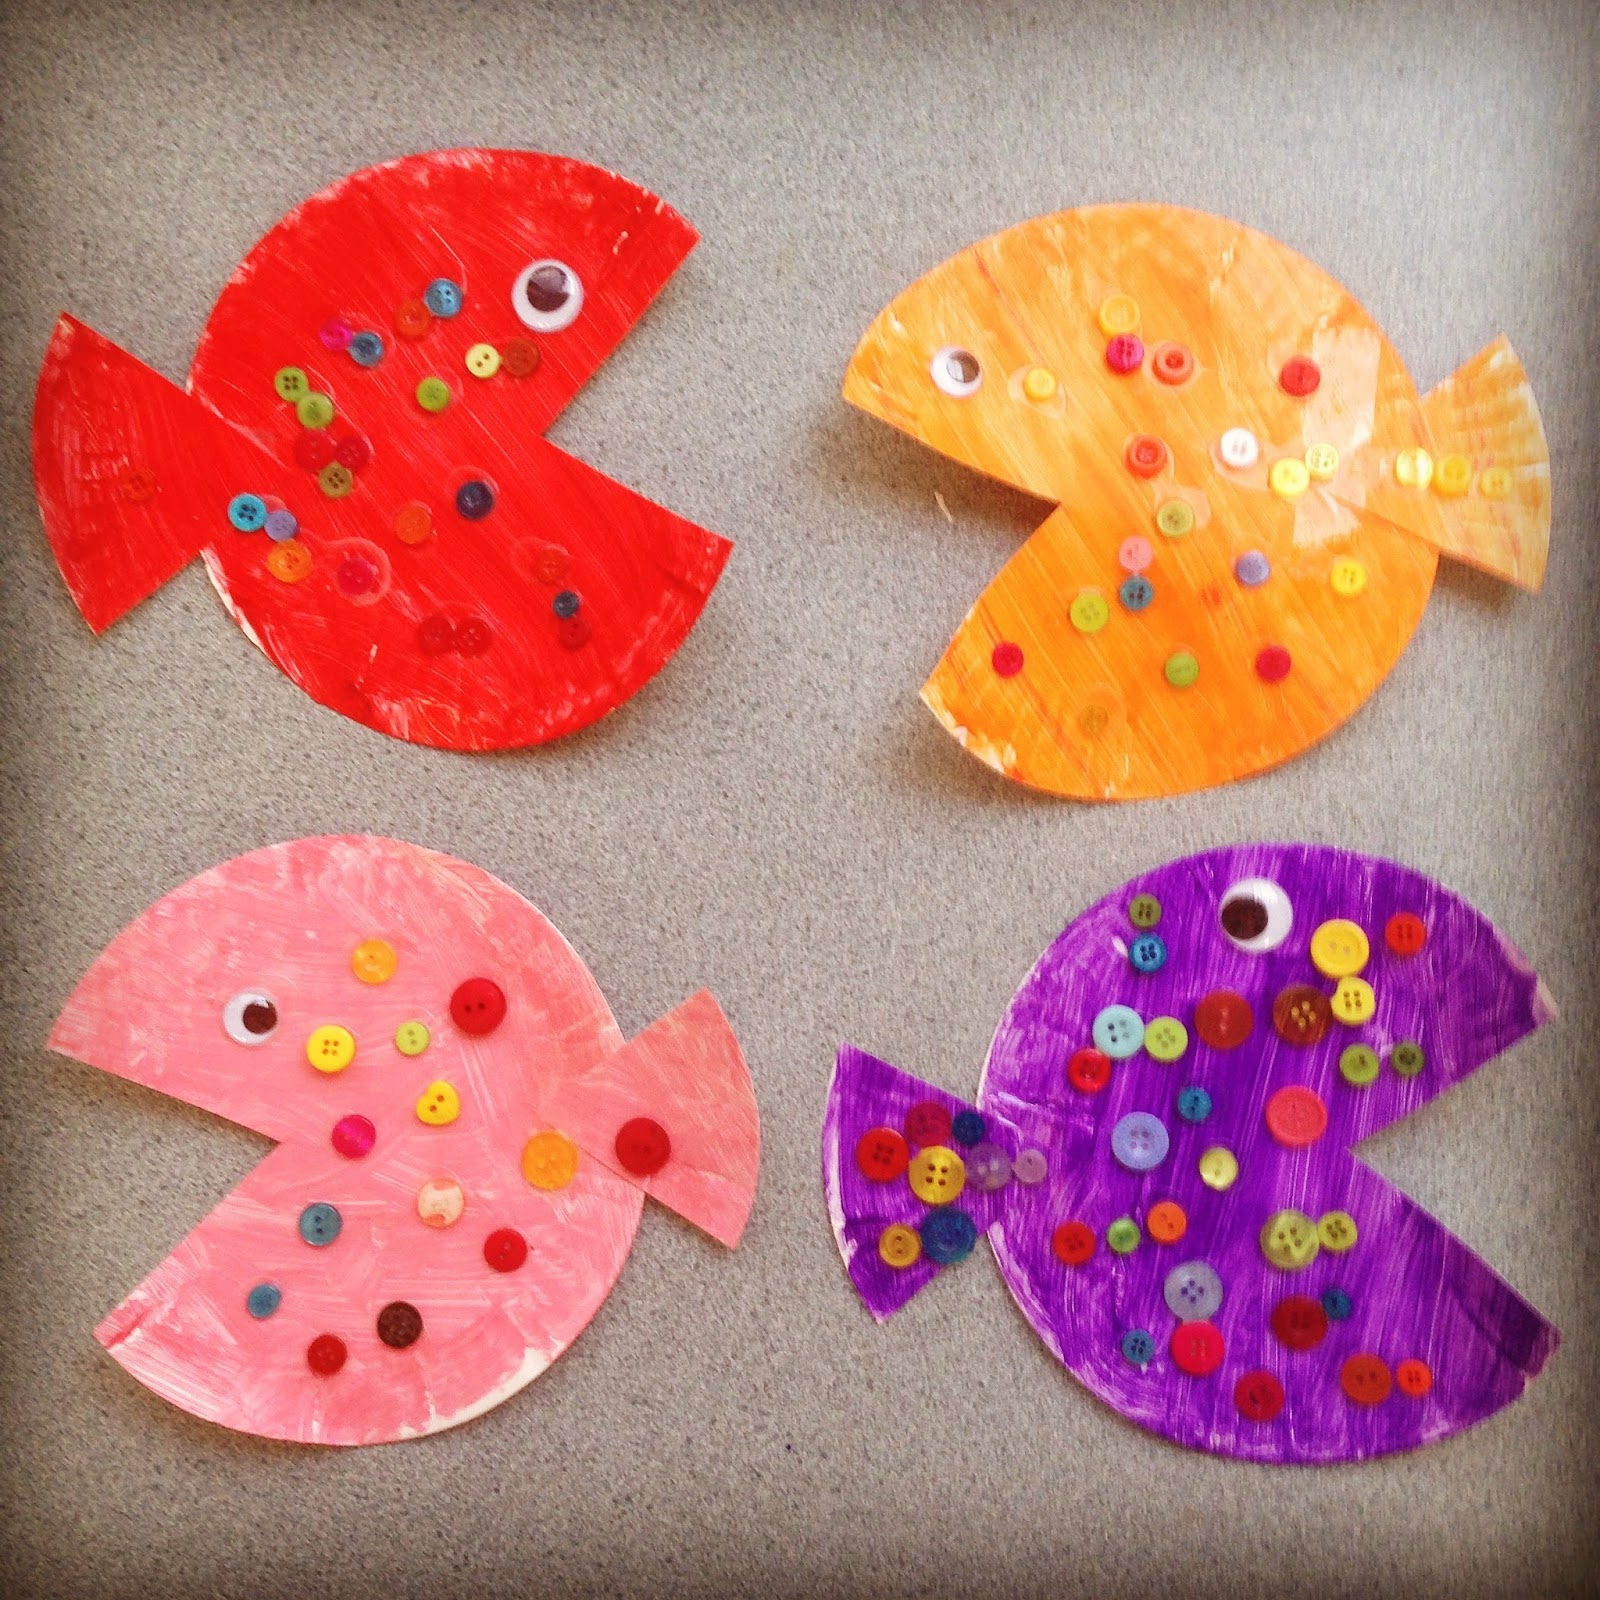 We made these cuties at school last year during our \u0027Under the Sea\u0027 unit. First paint a paper plate the when its dru cut out the mouth shape which becomes ... & 10+ Ocean Themed Activities for Your Finding Dory Fan - Teacher Types